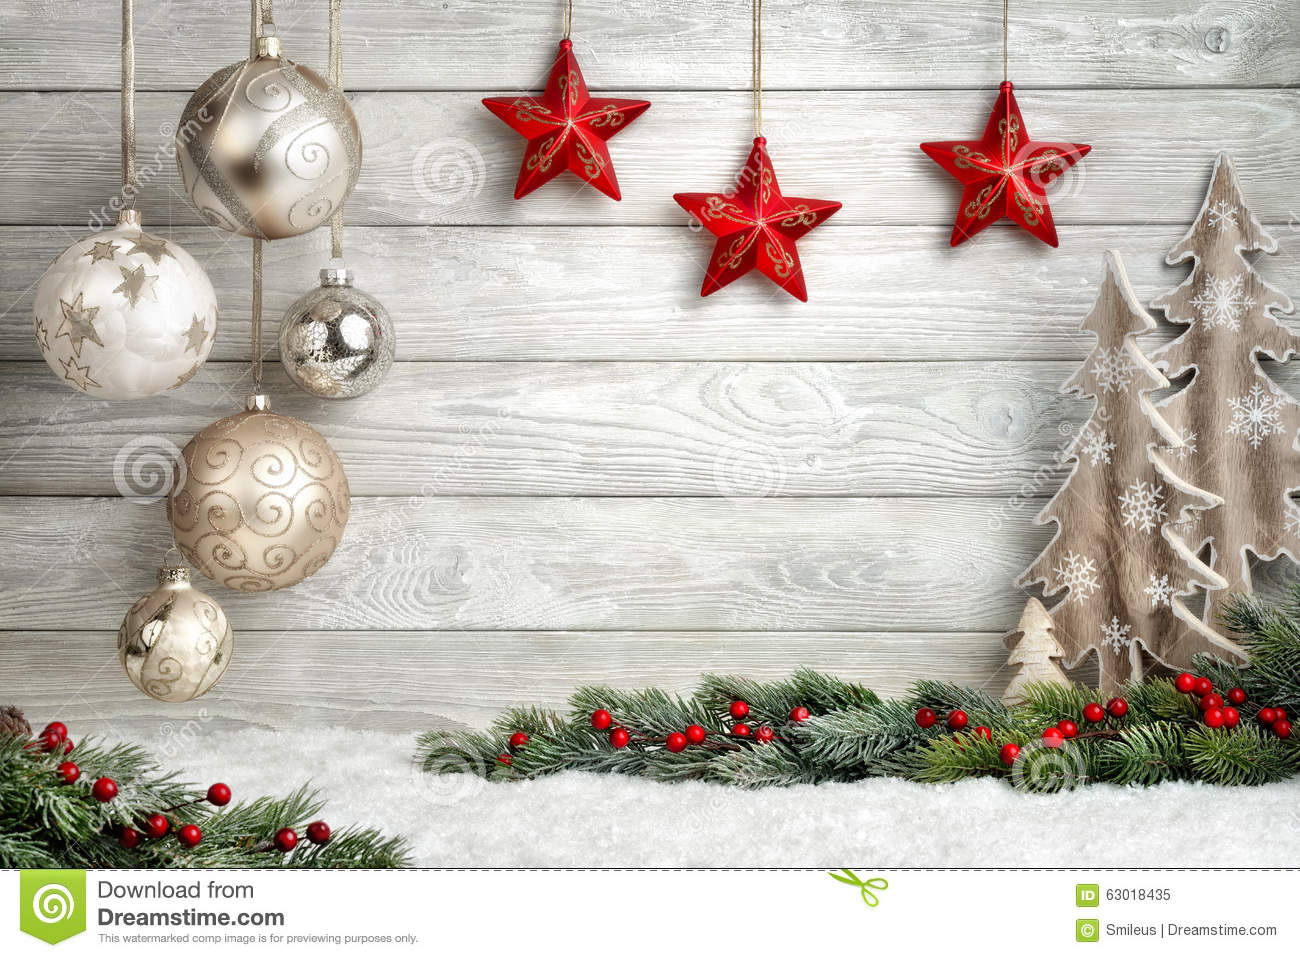 elegant christmas background stock image - image of copyspace, board